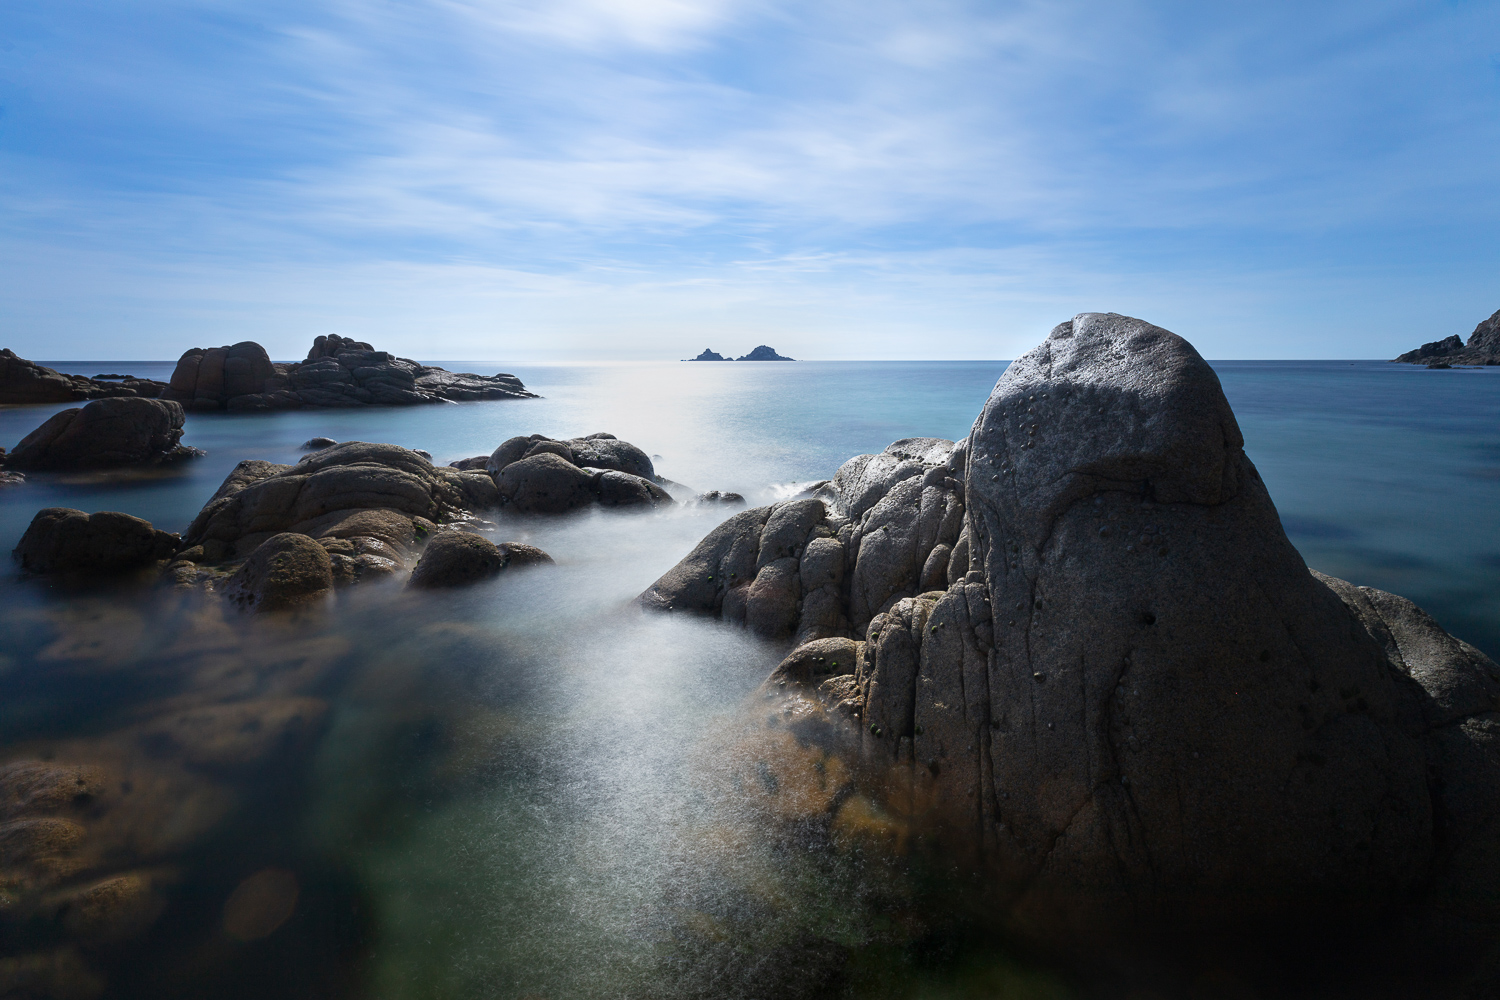 6-scenarios-to-try-for-more-interesting-beach-photography